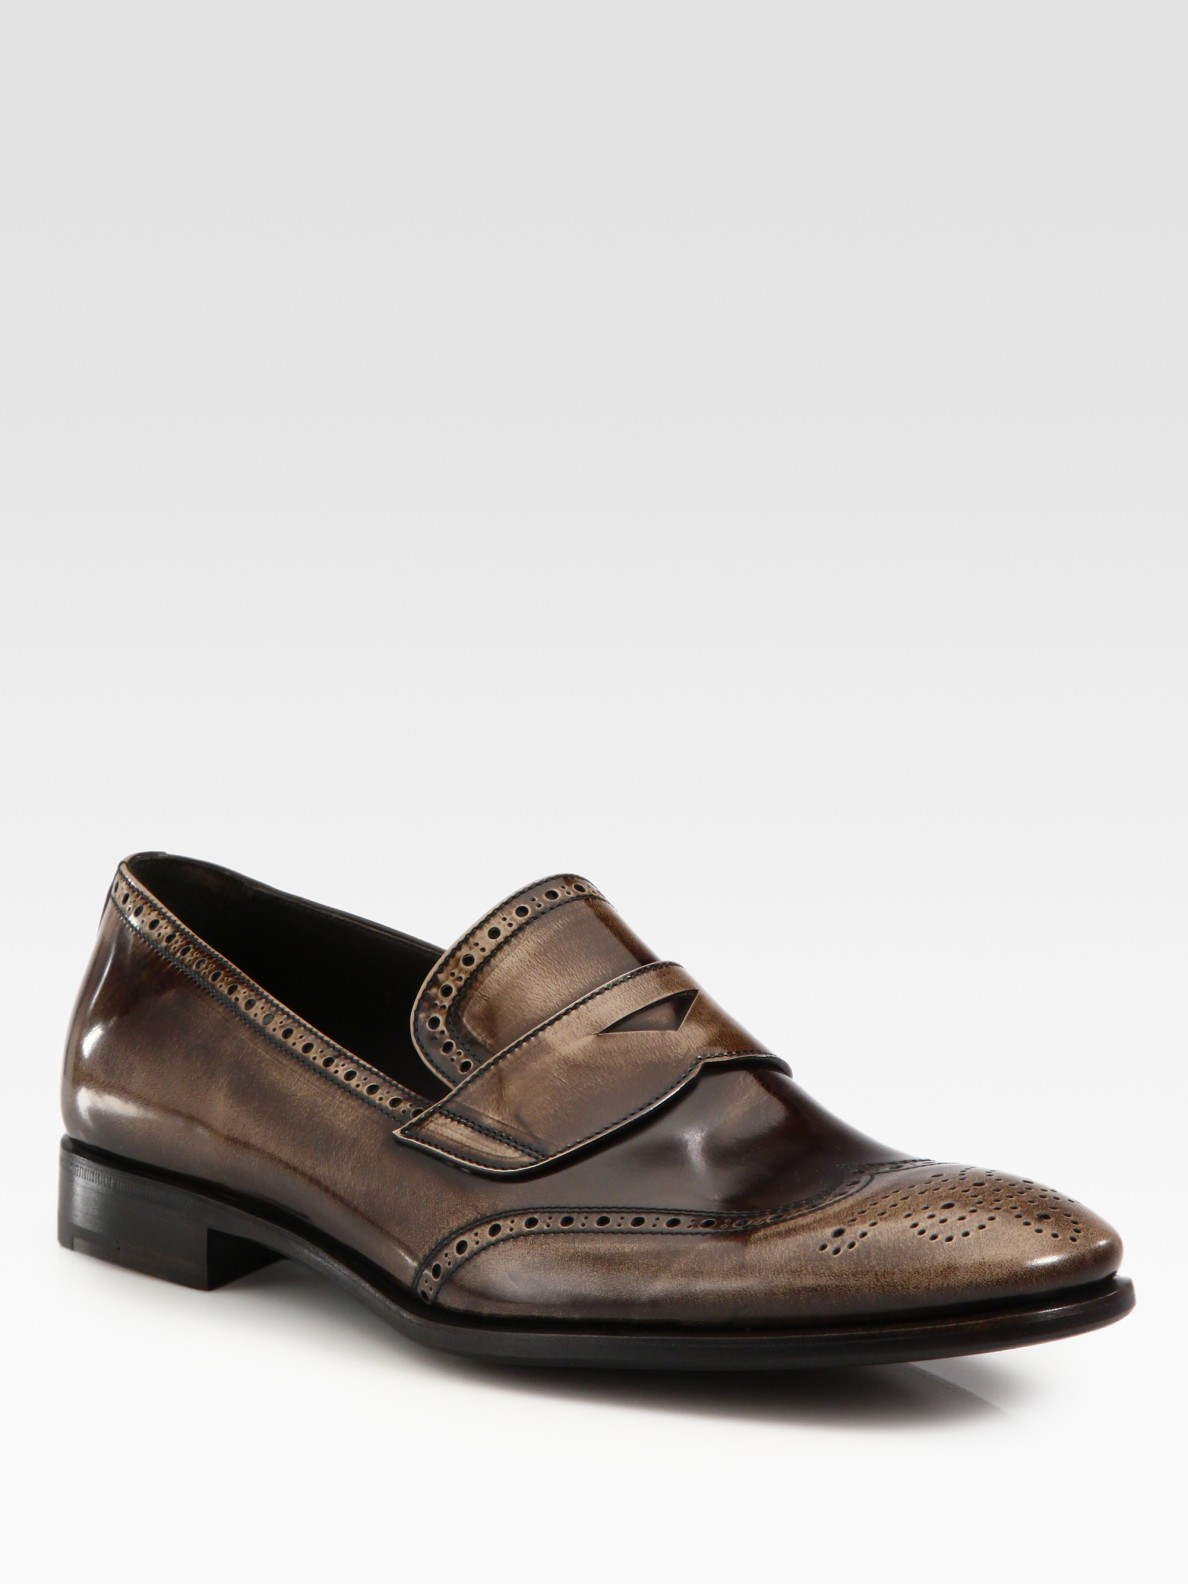 Prada Leather Loafers in Brown for Men